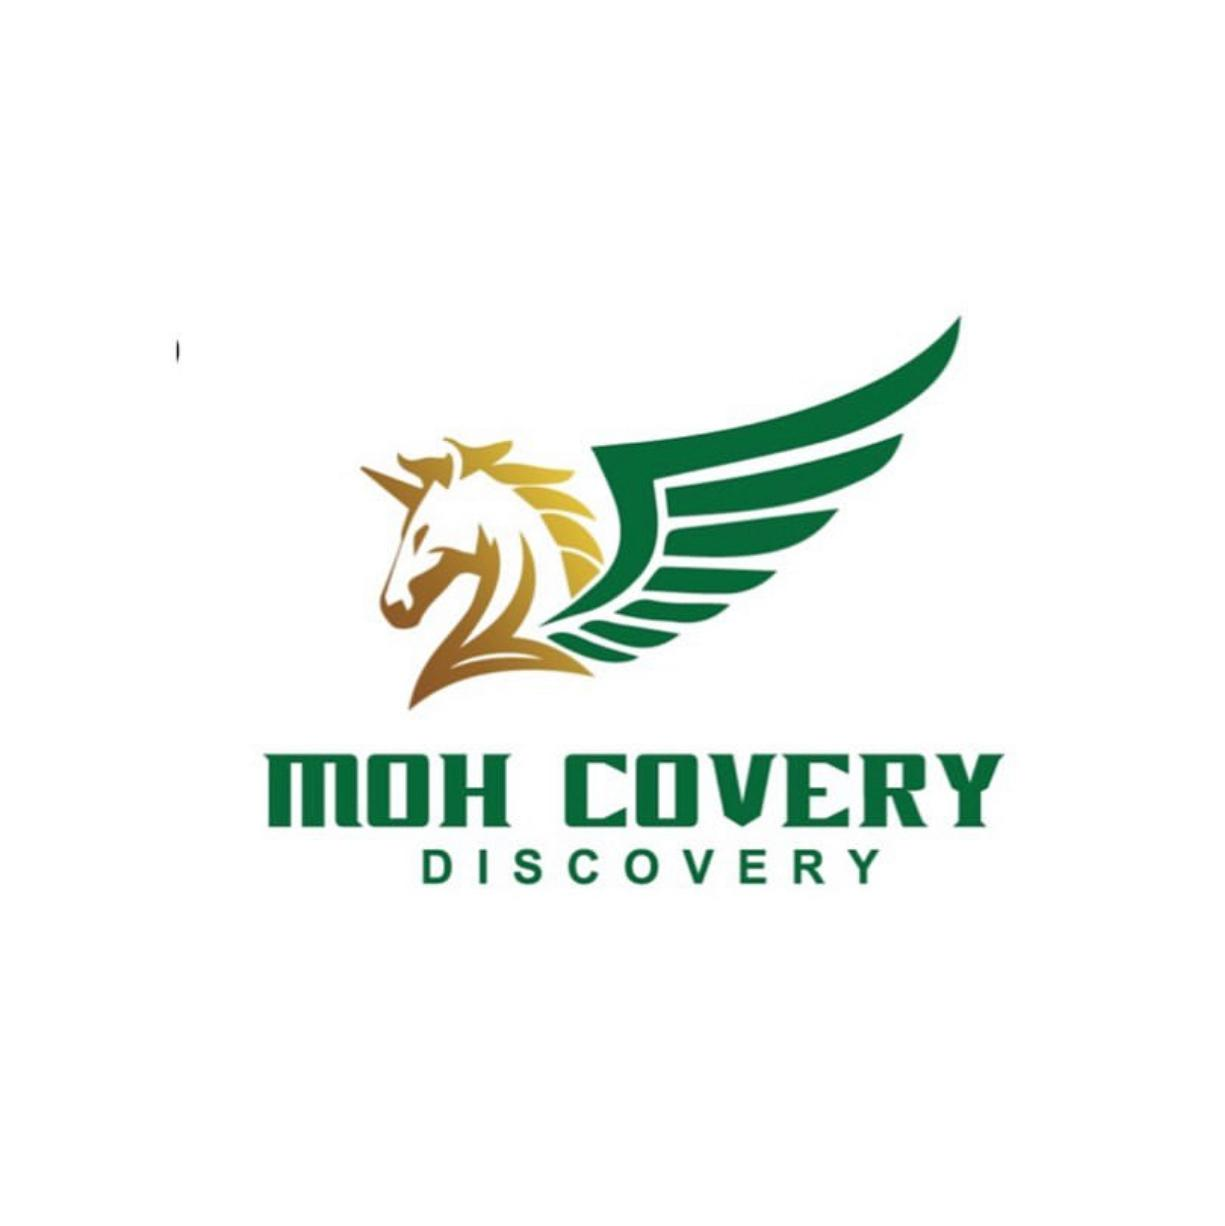 Mohcovery